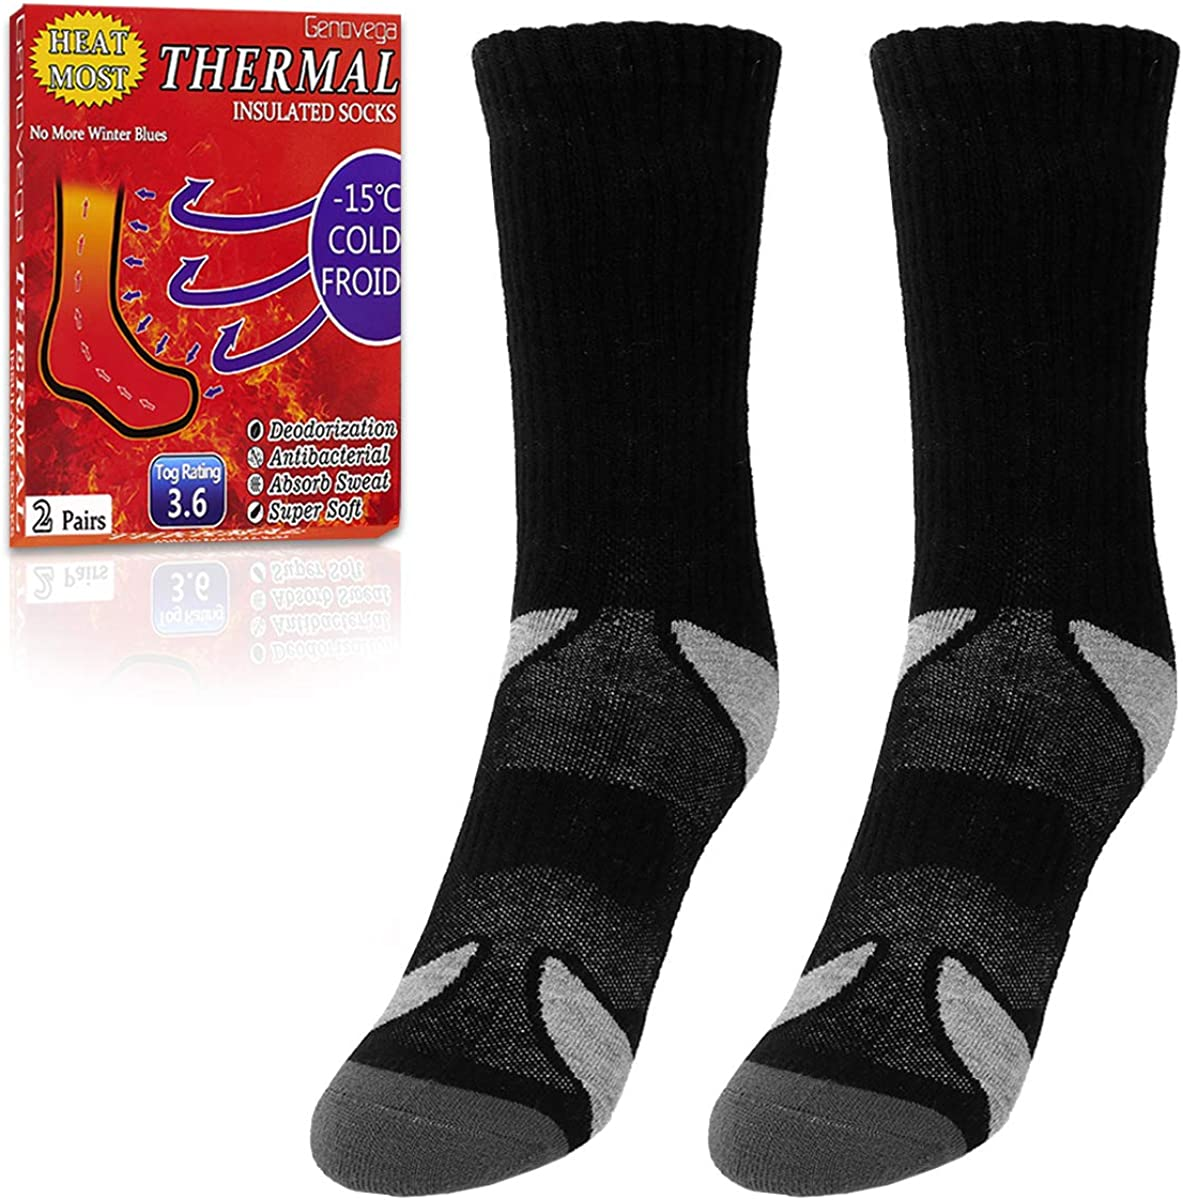 2 Pairs Thermal Socks for Cold Winter, with Thick Soft Warm Fuzzy Lined